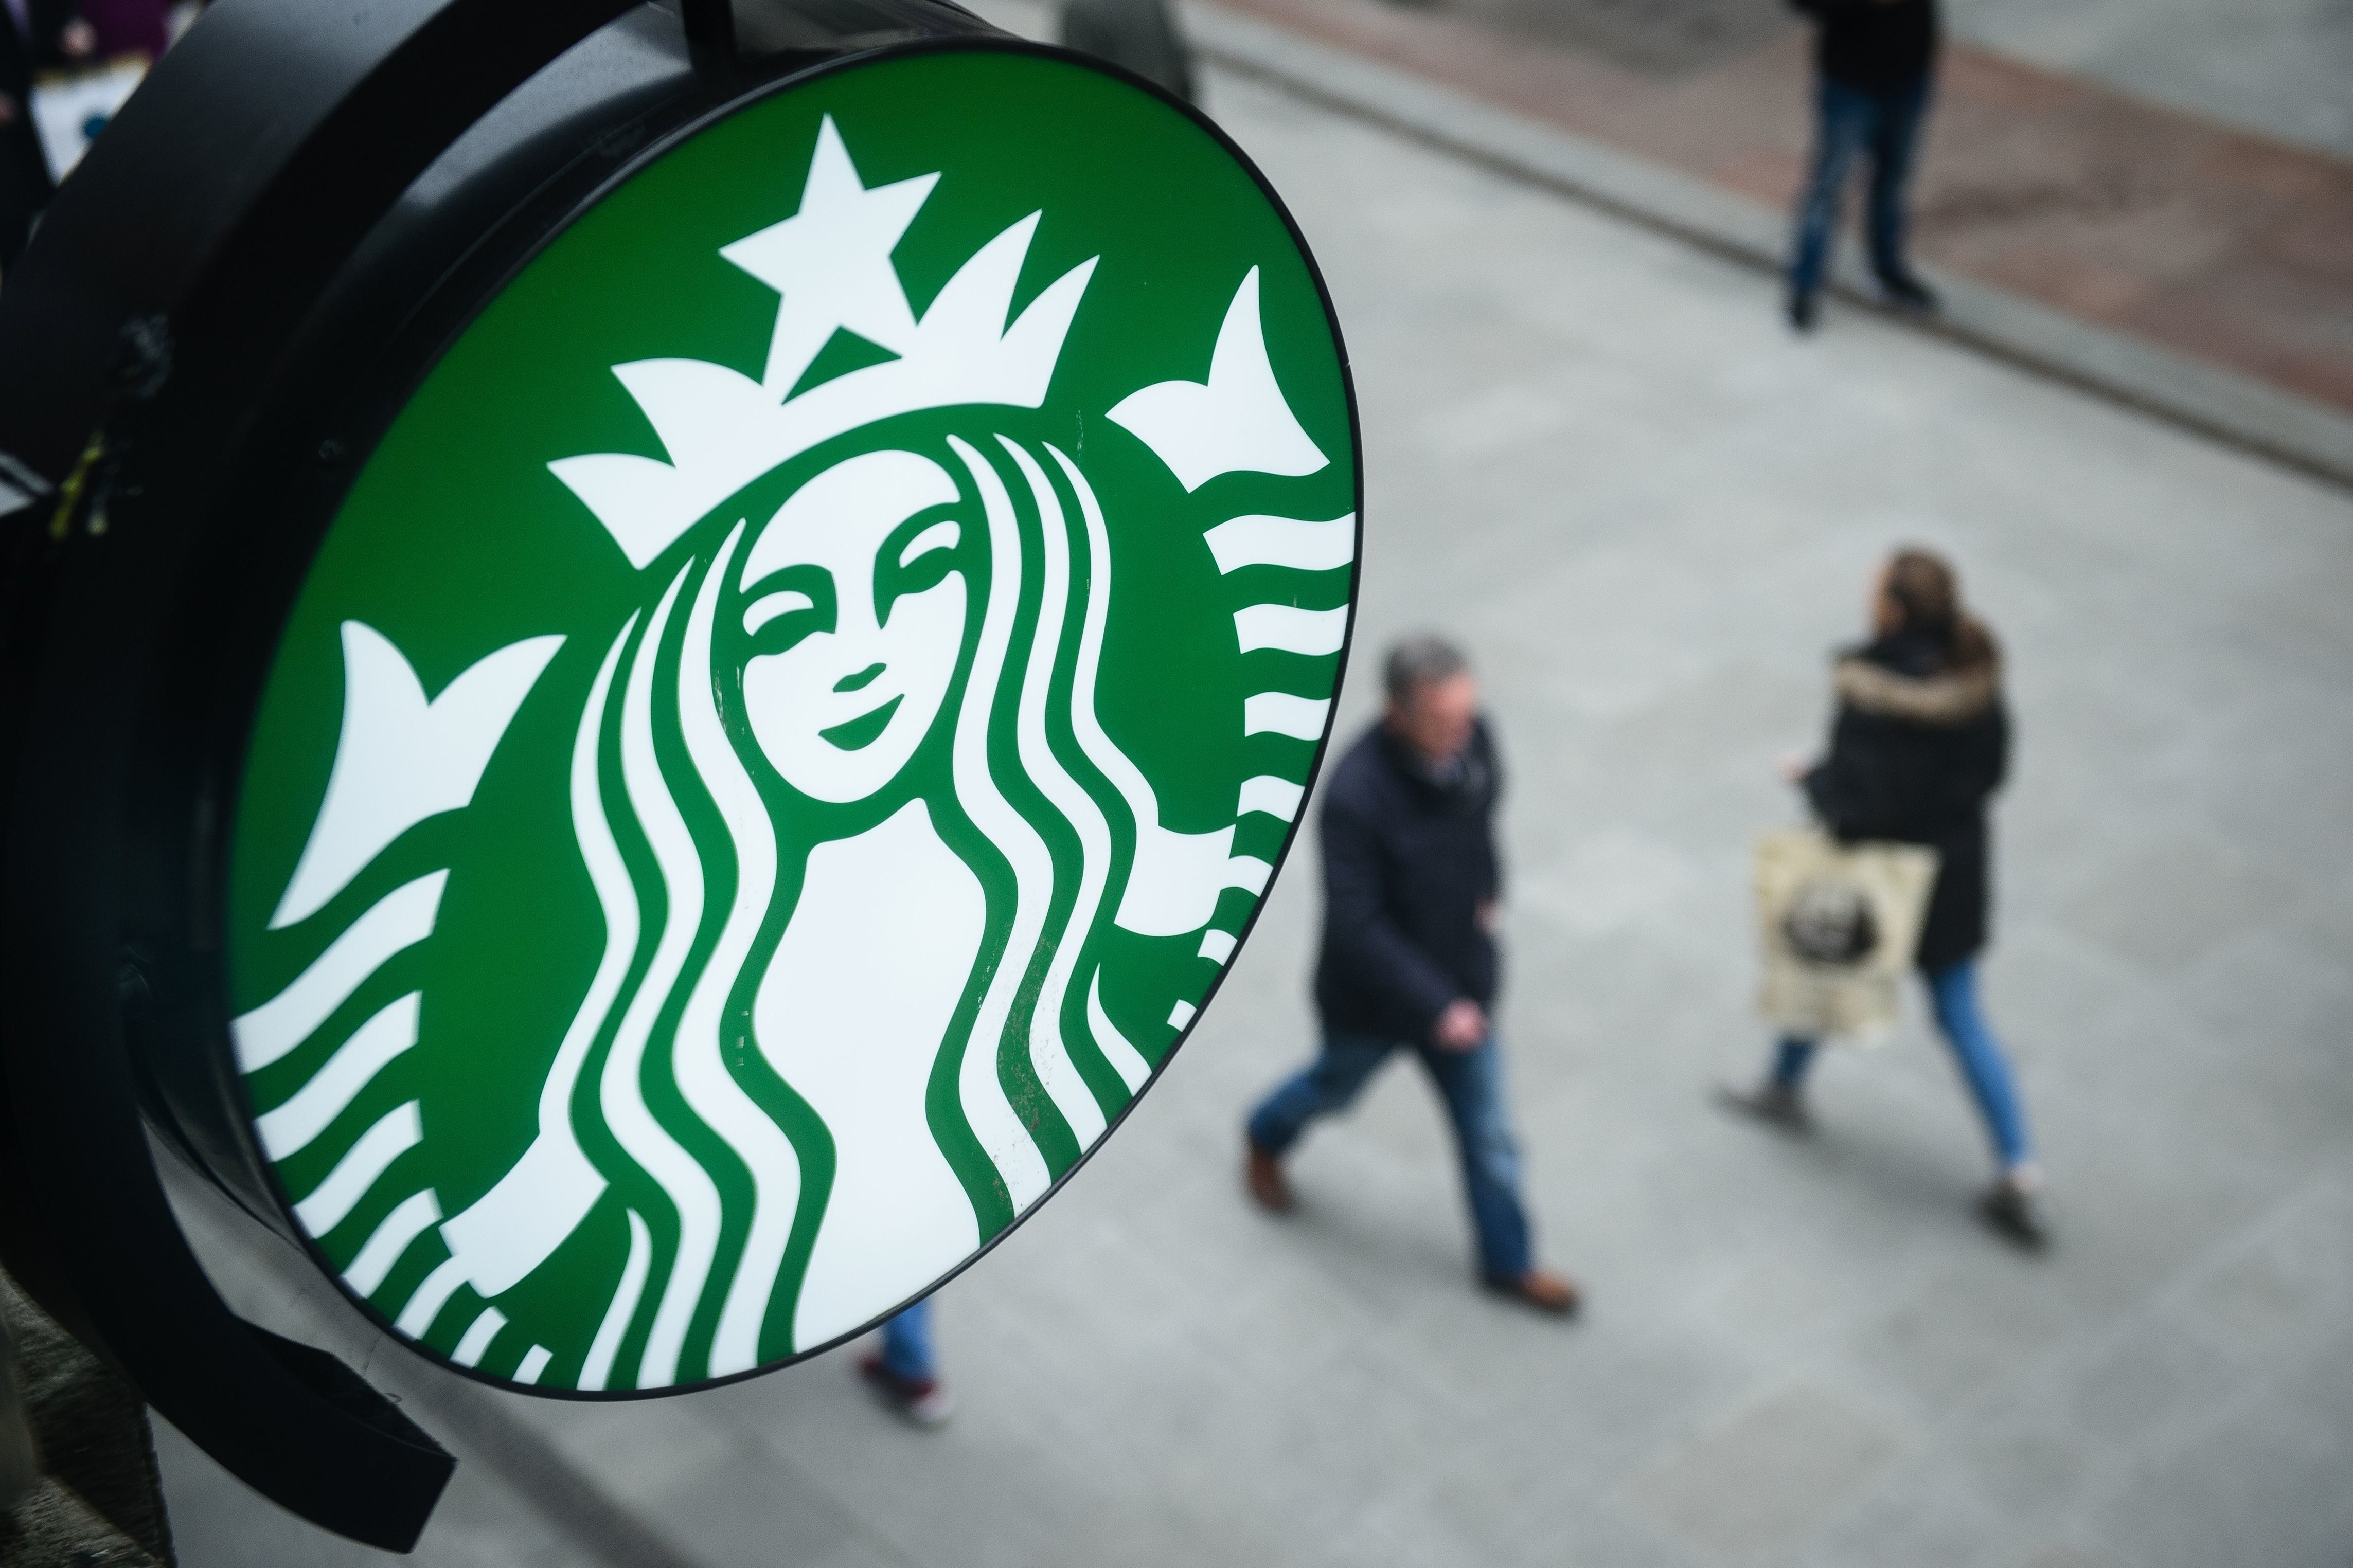 The Starbucks logo is pictured outside a branch of the coffee shop chain in Dublin, Ireland, on February 25, 2016. / AFP / LEON NEAL        (Photo credit should read LEON NEAL/AFP/Getty Images)